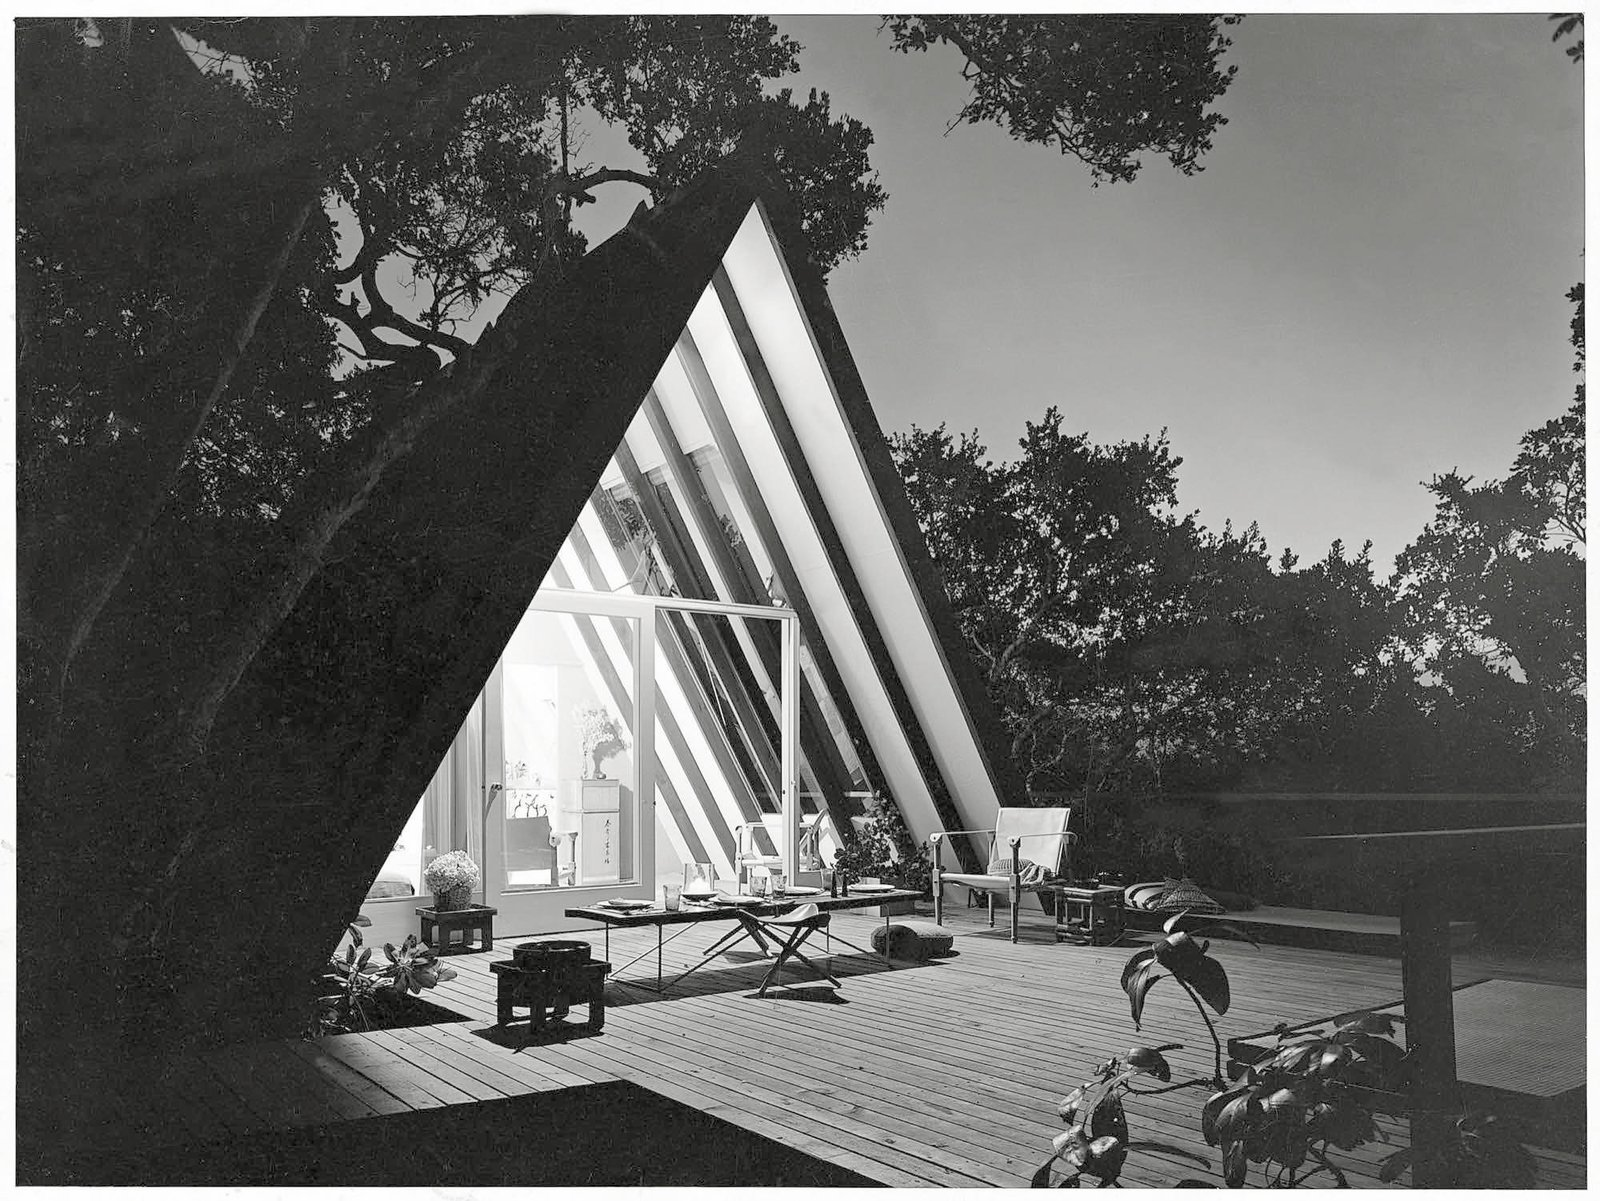 John Campbell's Leisure House, Mill Valley , California, 1953 / Photo Courtesy of Princeton Architectural Press  Spawned by postwar affluence, A-frame cabins became the quintessential American vacation home of the 1950s and 60s. A look at what made these icons of middle-class leisure immensely popular then, and what it is like to remodel and live in one today.